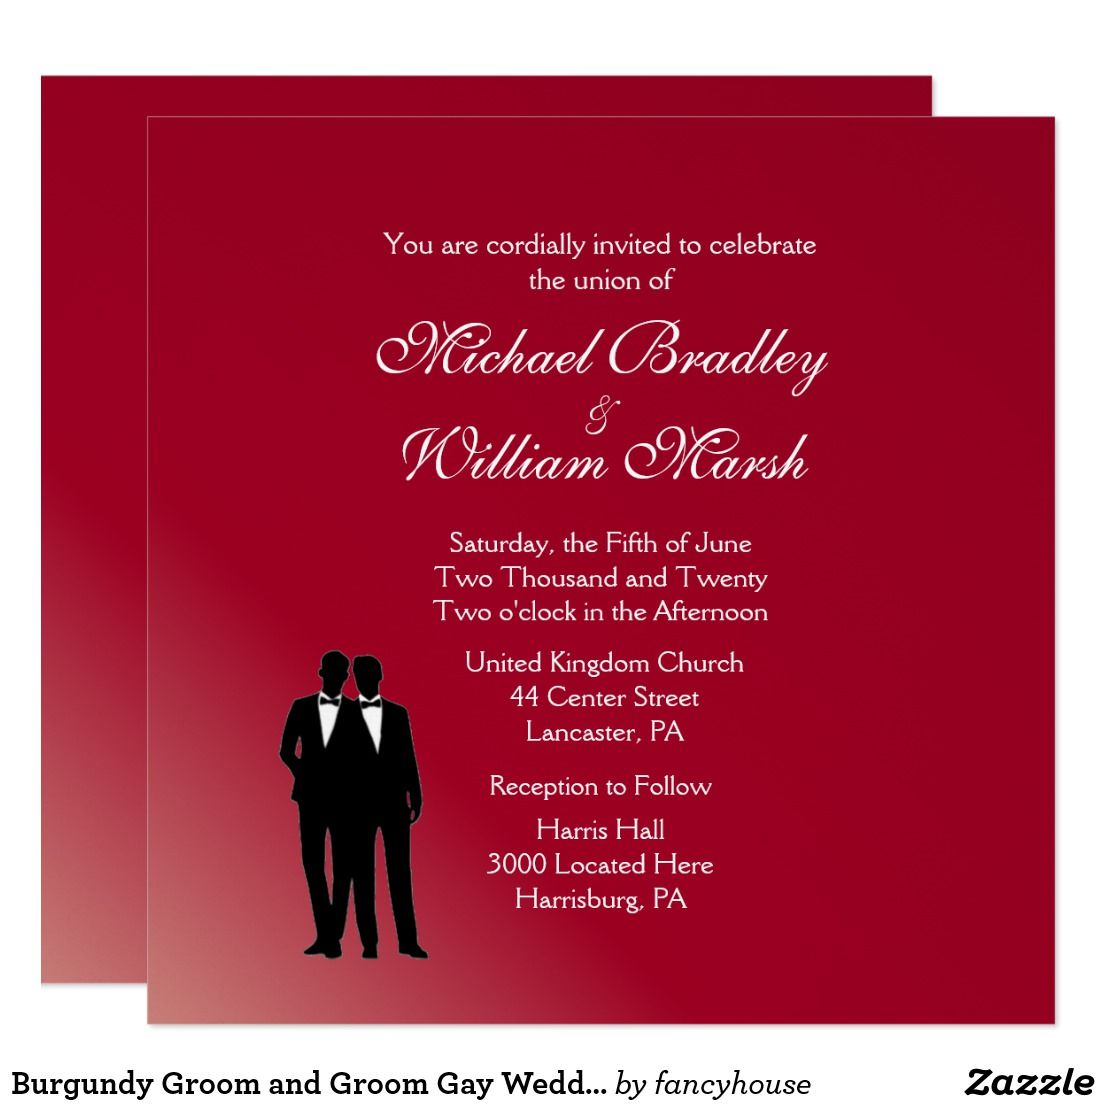 Burgundy Groom And Groom Gay Wedding Invitation Weddings